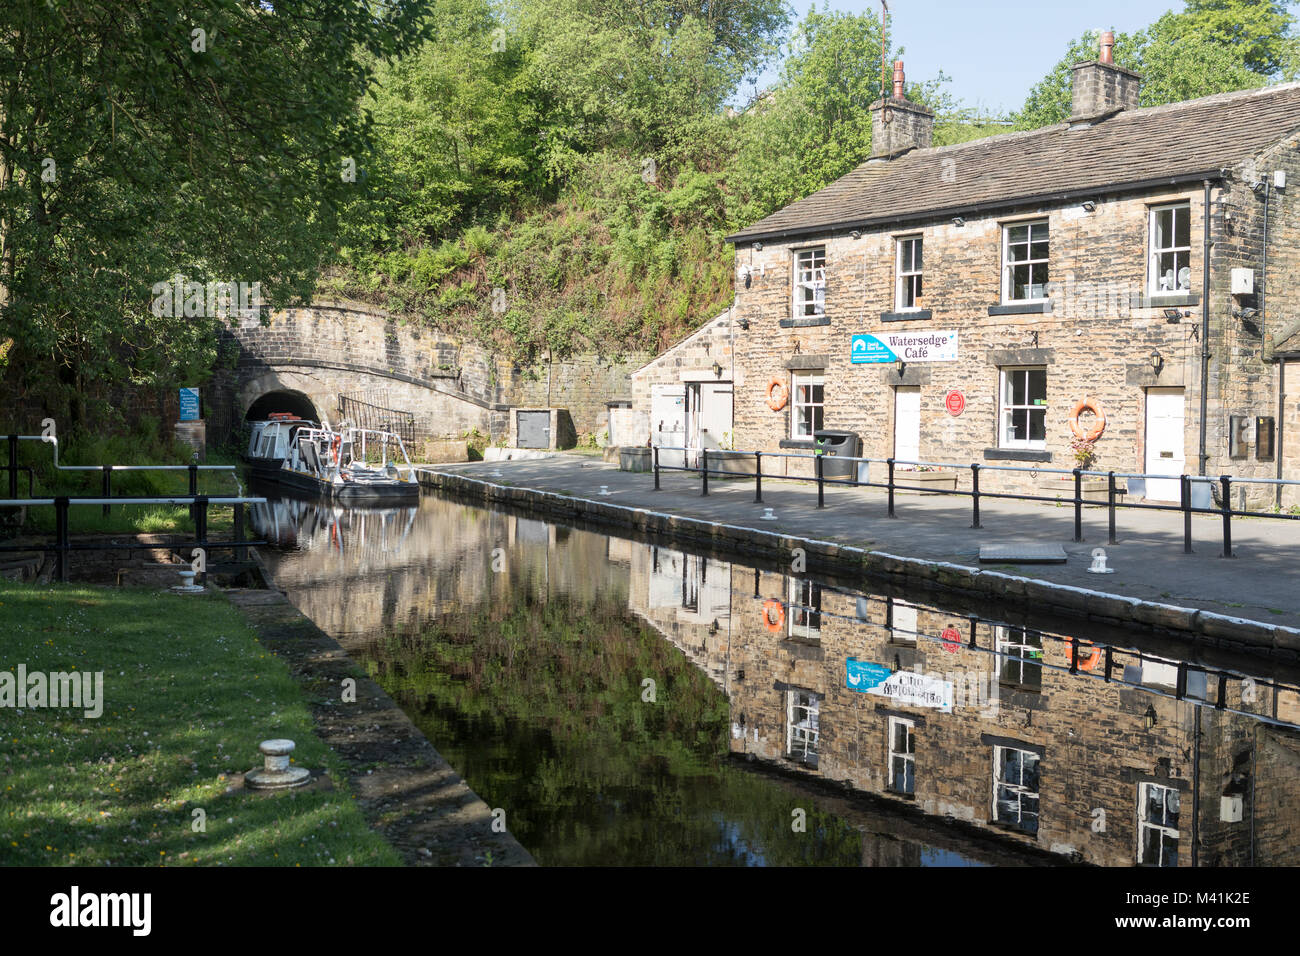 Huddersfield Narrow canal, Tunnel end at Marsden, entrance to the Standedge tunnel. - Stock Image